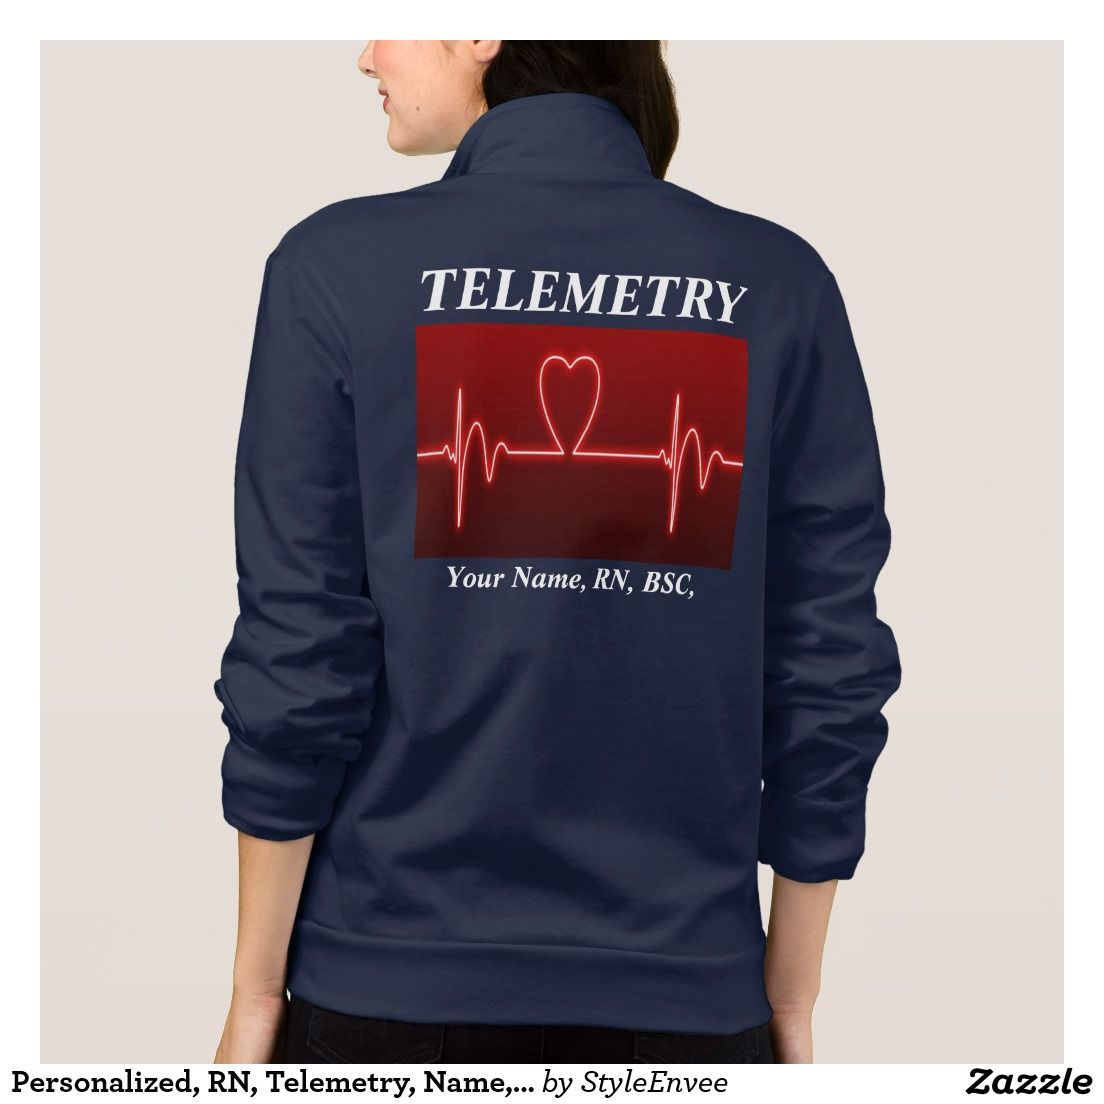 Design your own t shirt american apparel - Personalized Rn Telemetry Name Credentials Jacket